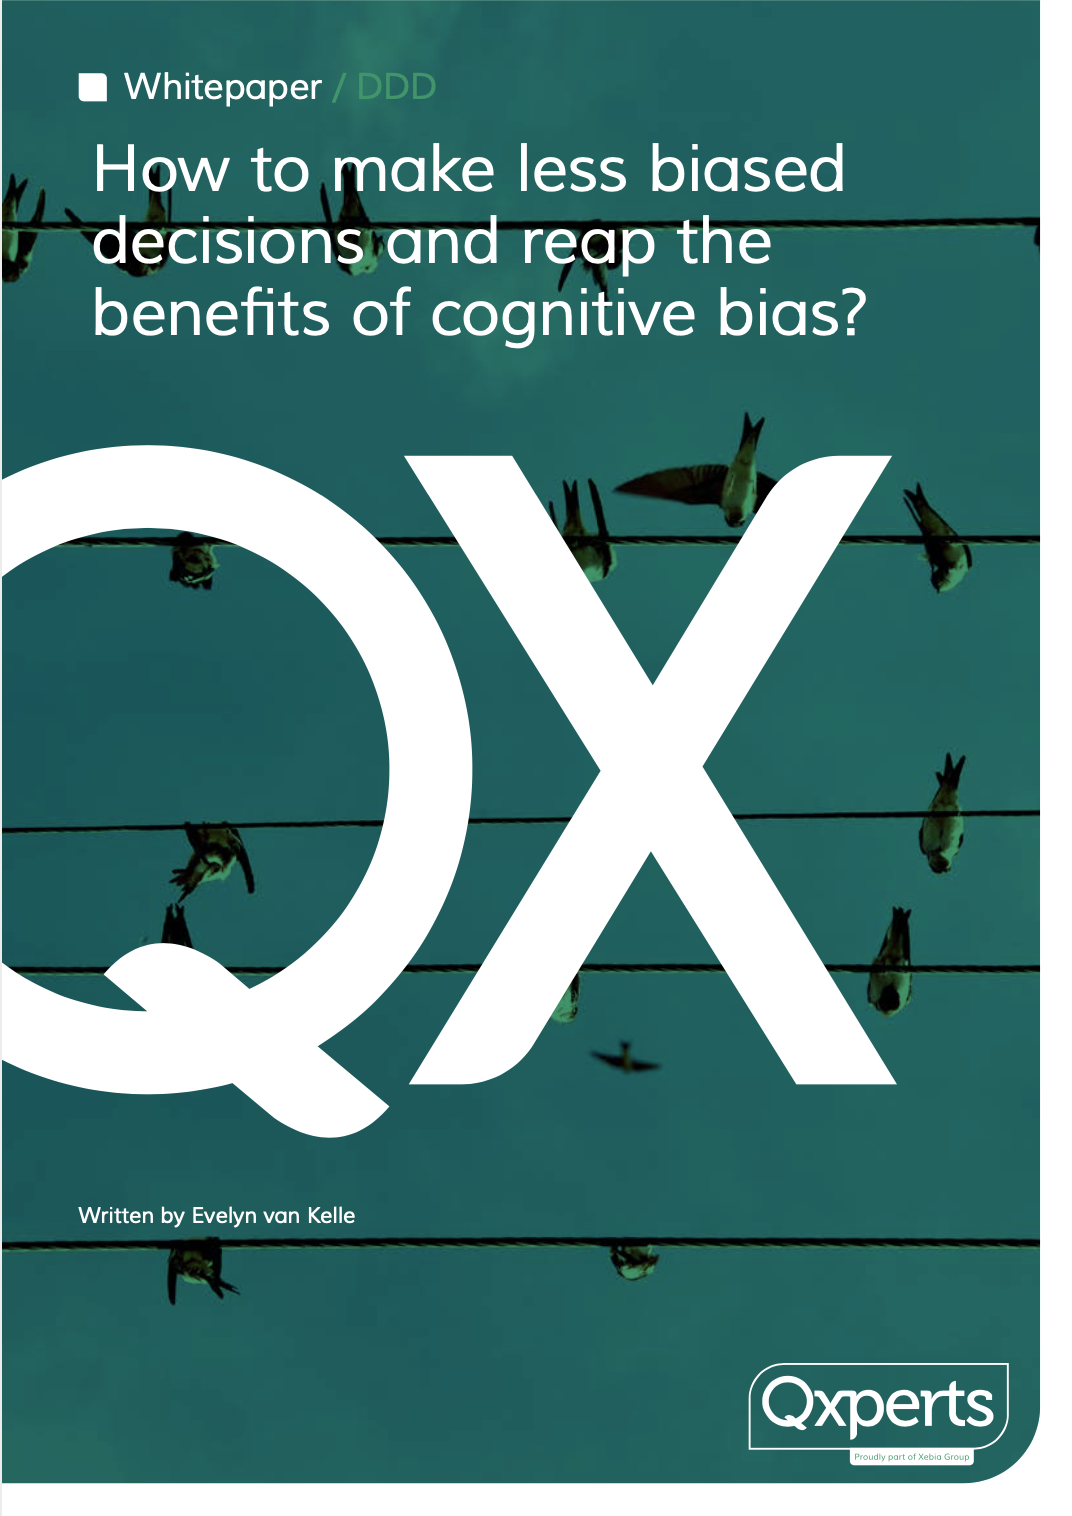 How to make less biased decisions and reap the benefits of cognitive bias?